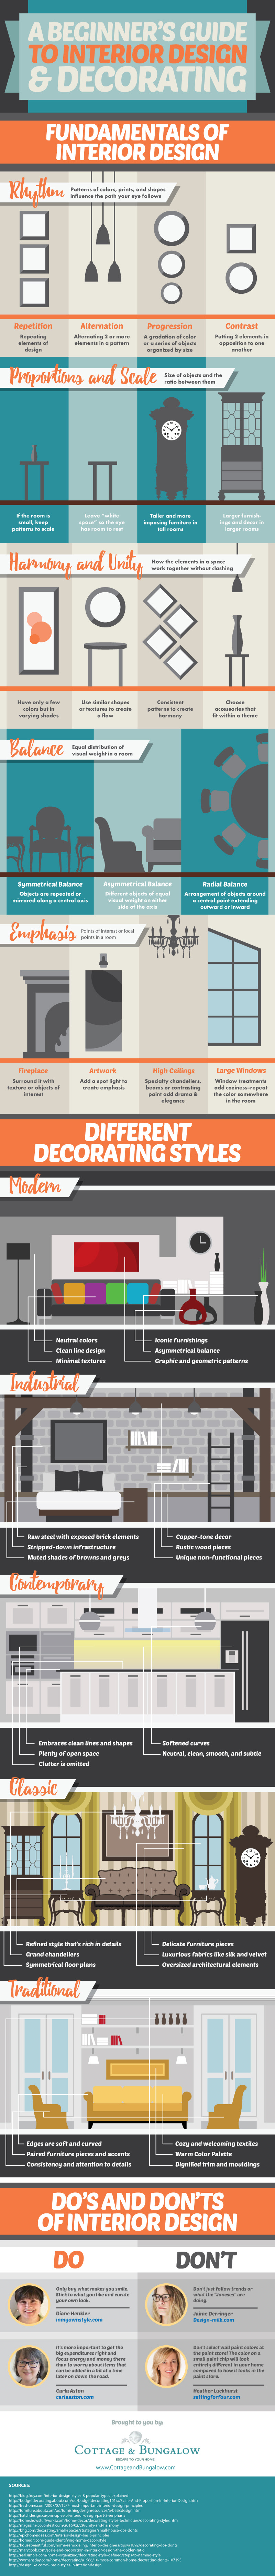 A Beginner's Guide to Interior Design and Decorating